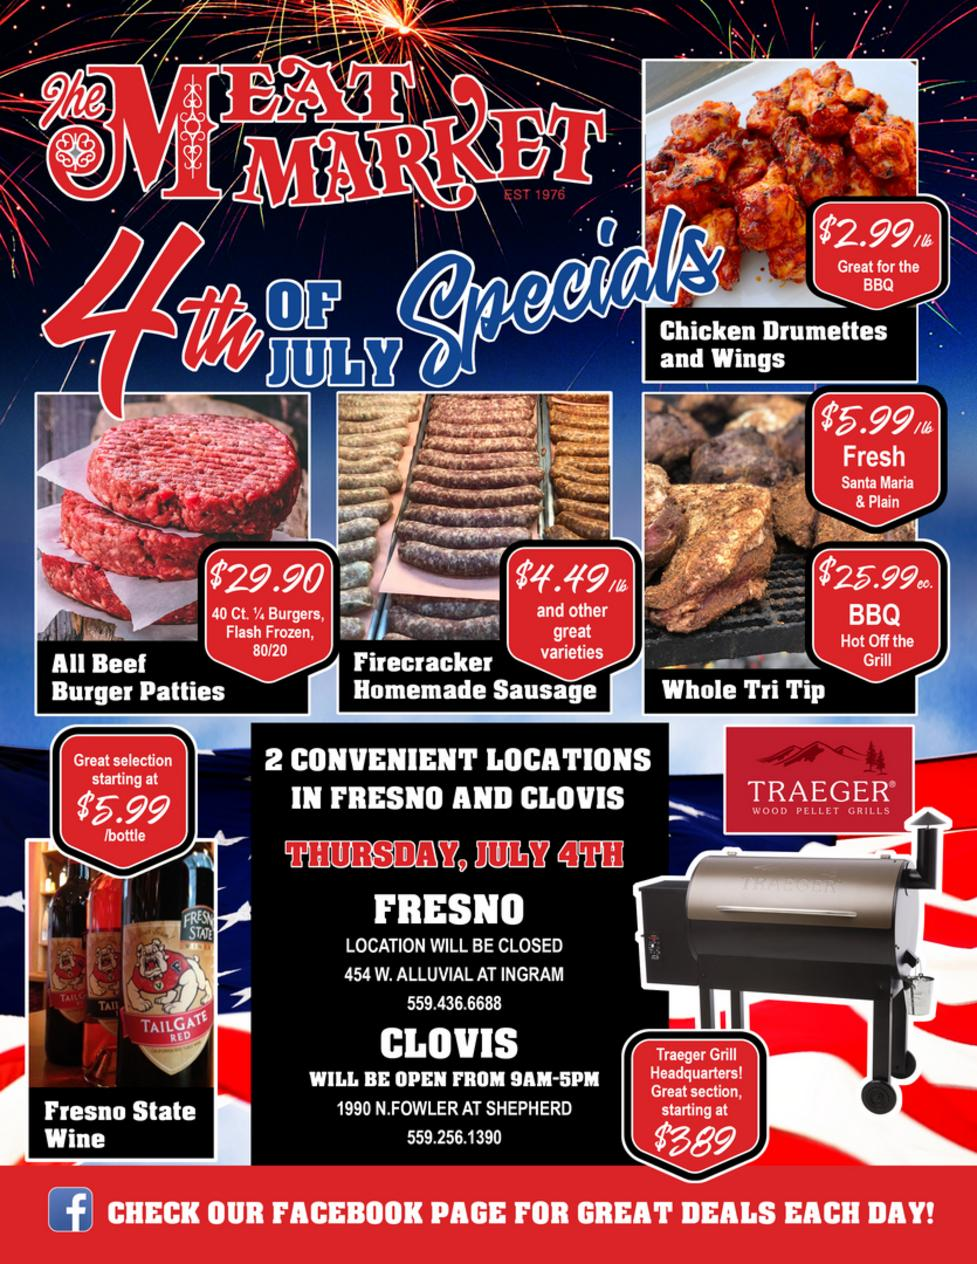 Weekly Specials for The Meat Market